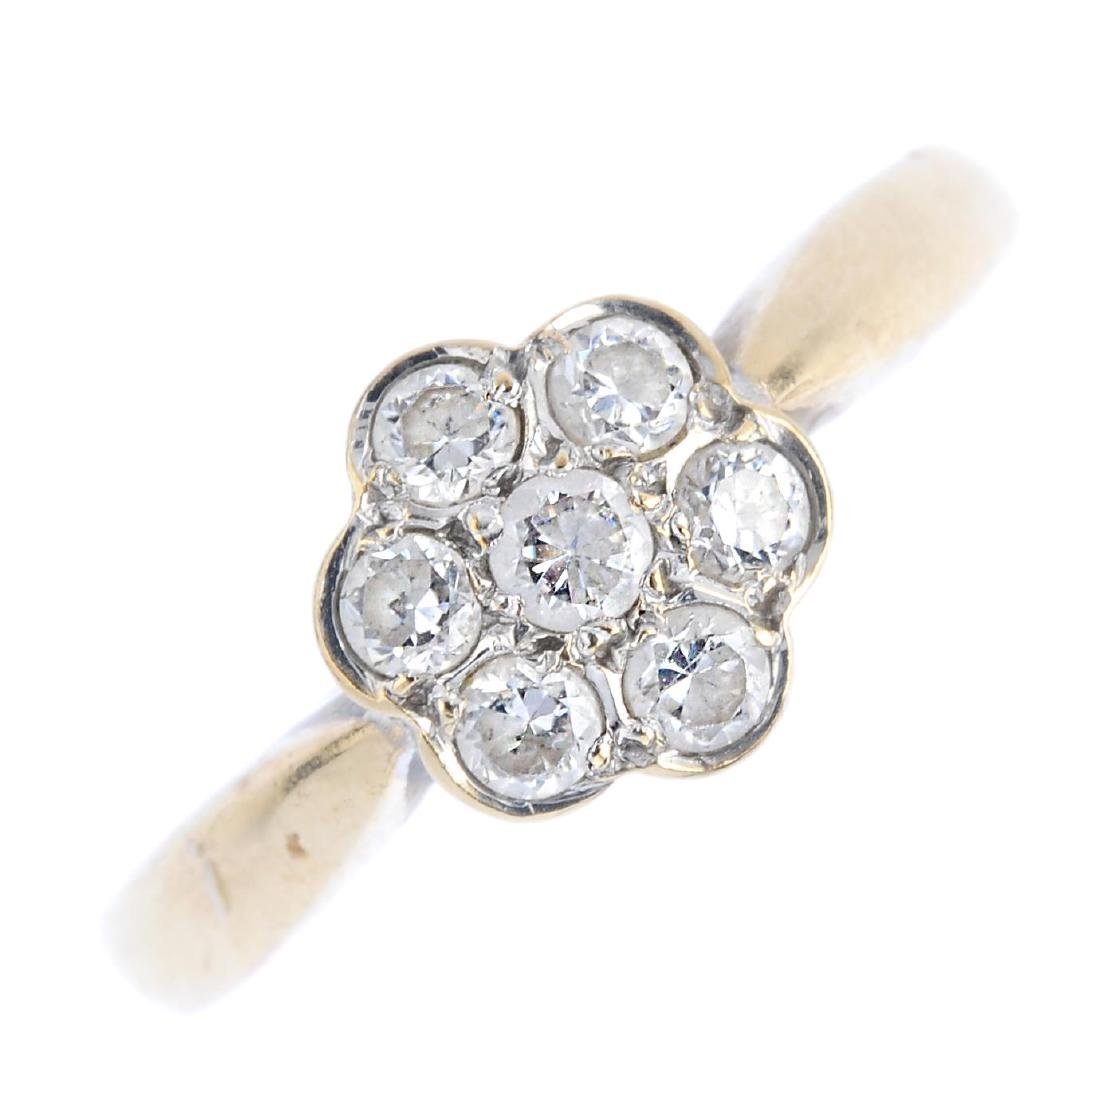 A 9ct gold cubic zirconia cluster ring. The